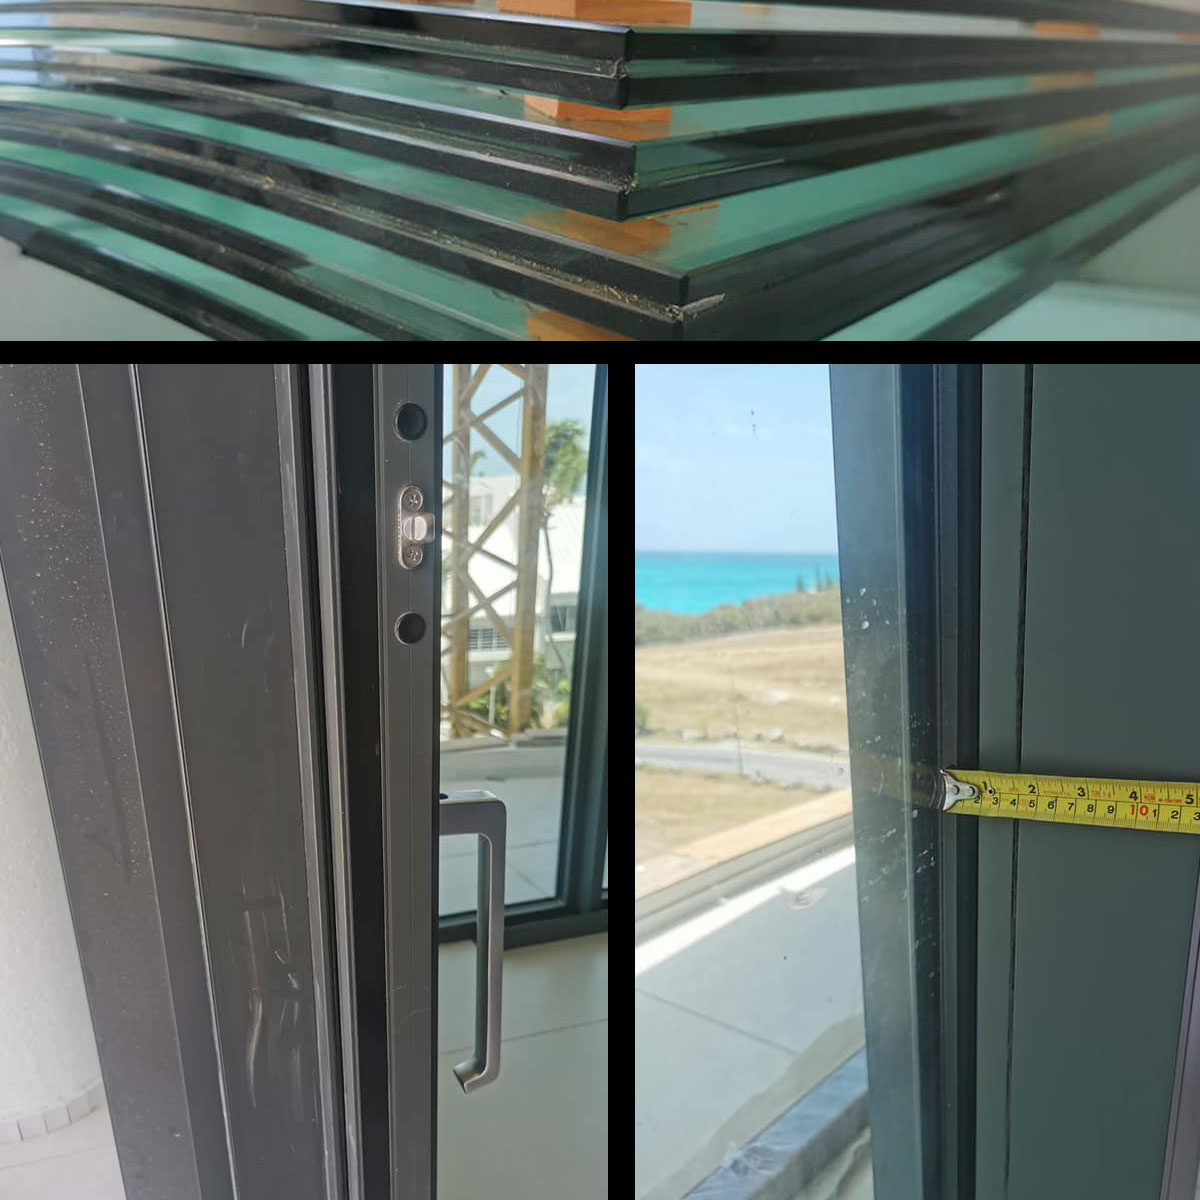 Mullet Bay Condos - Hurricane Resistant Glass